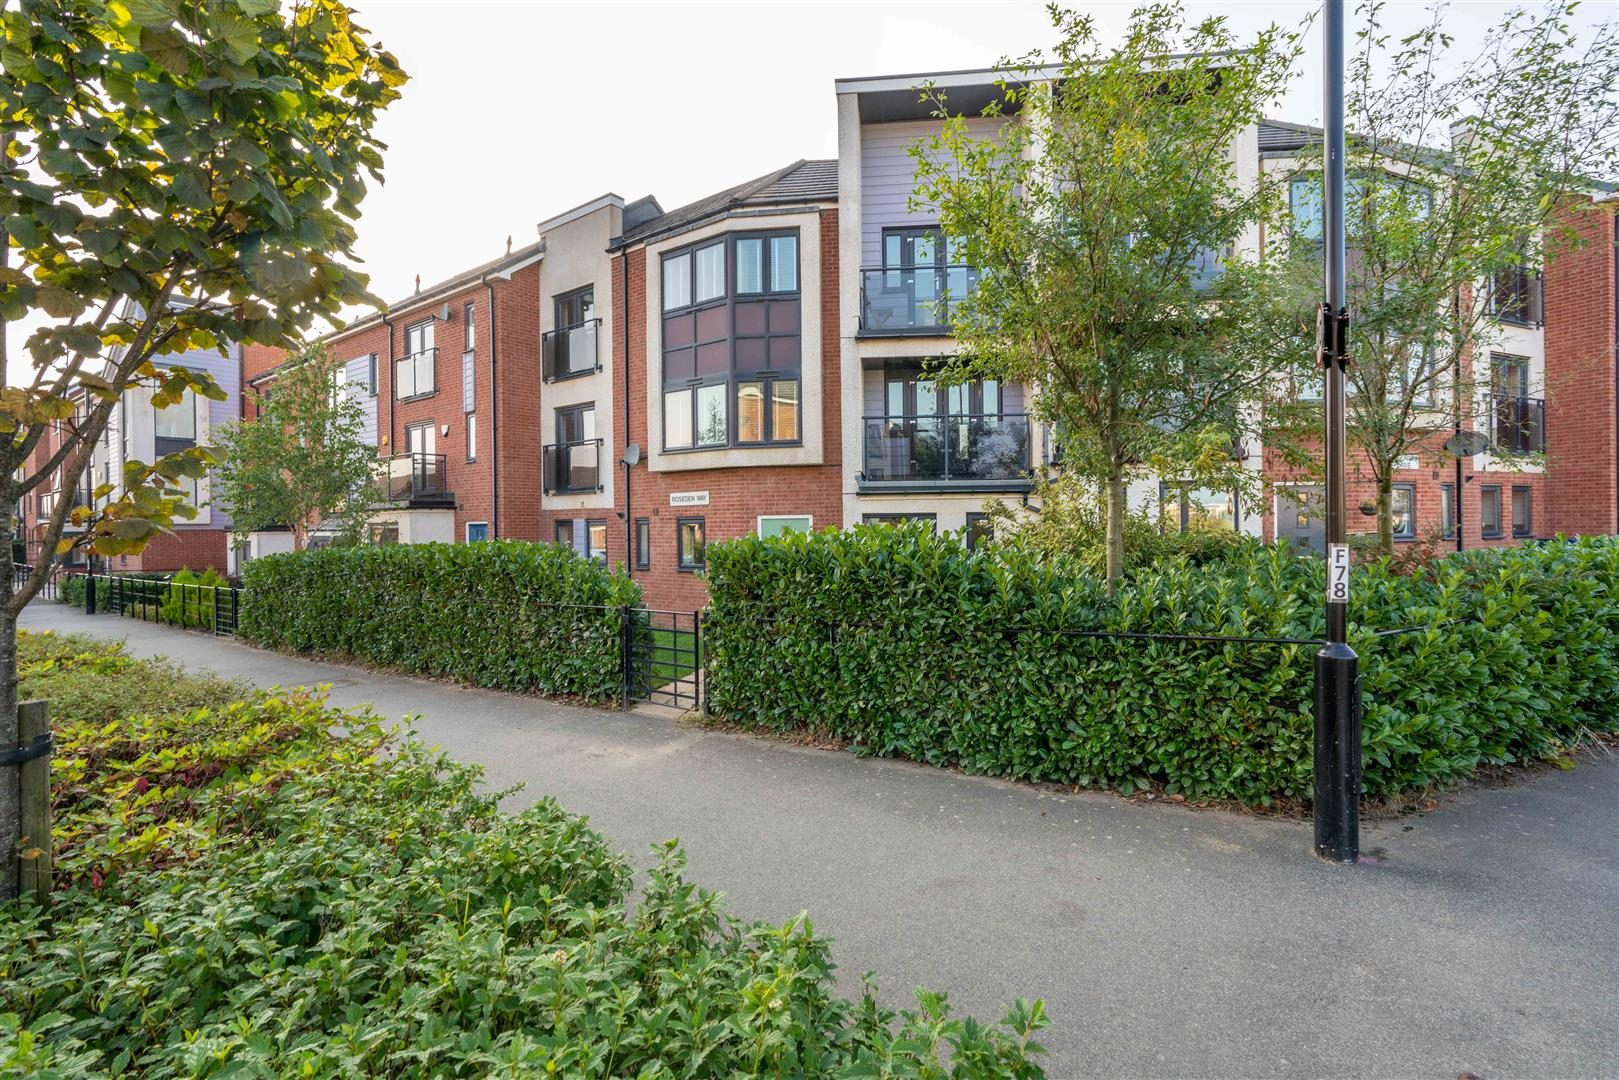 5 bed town house for sale in Roseden Way, Great Park, NE13